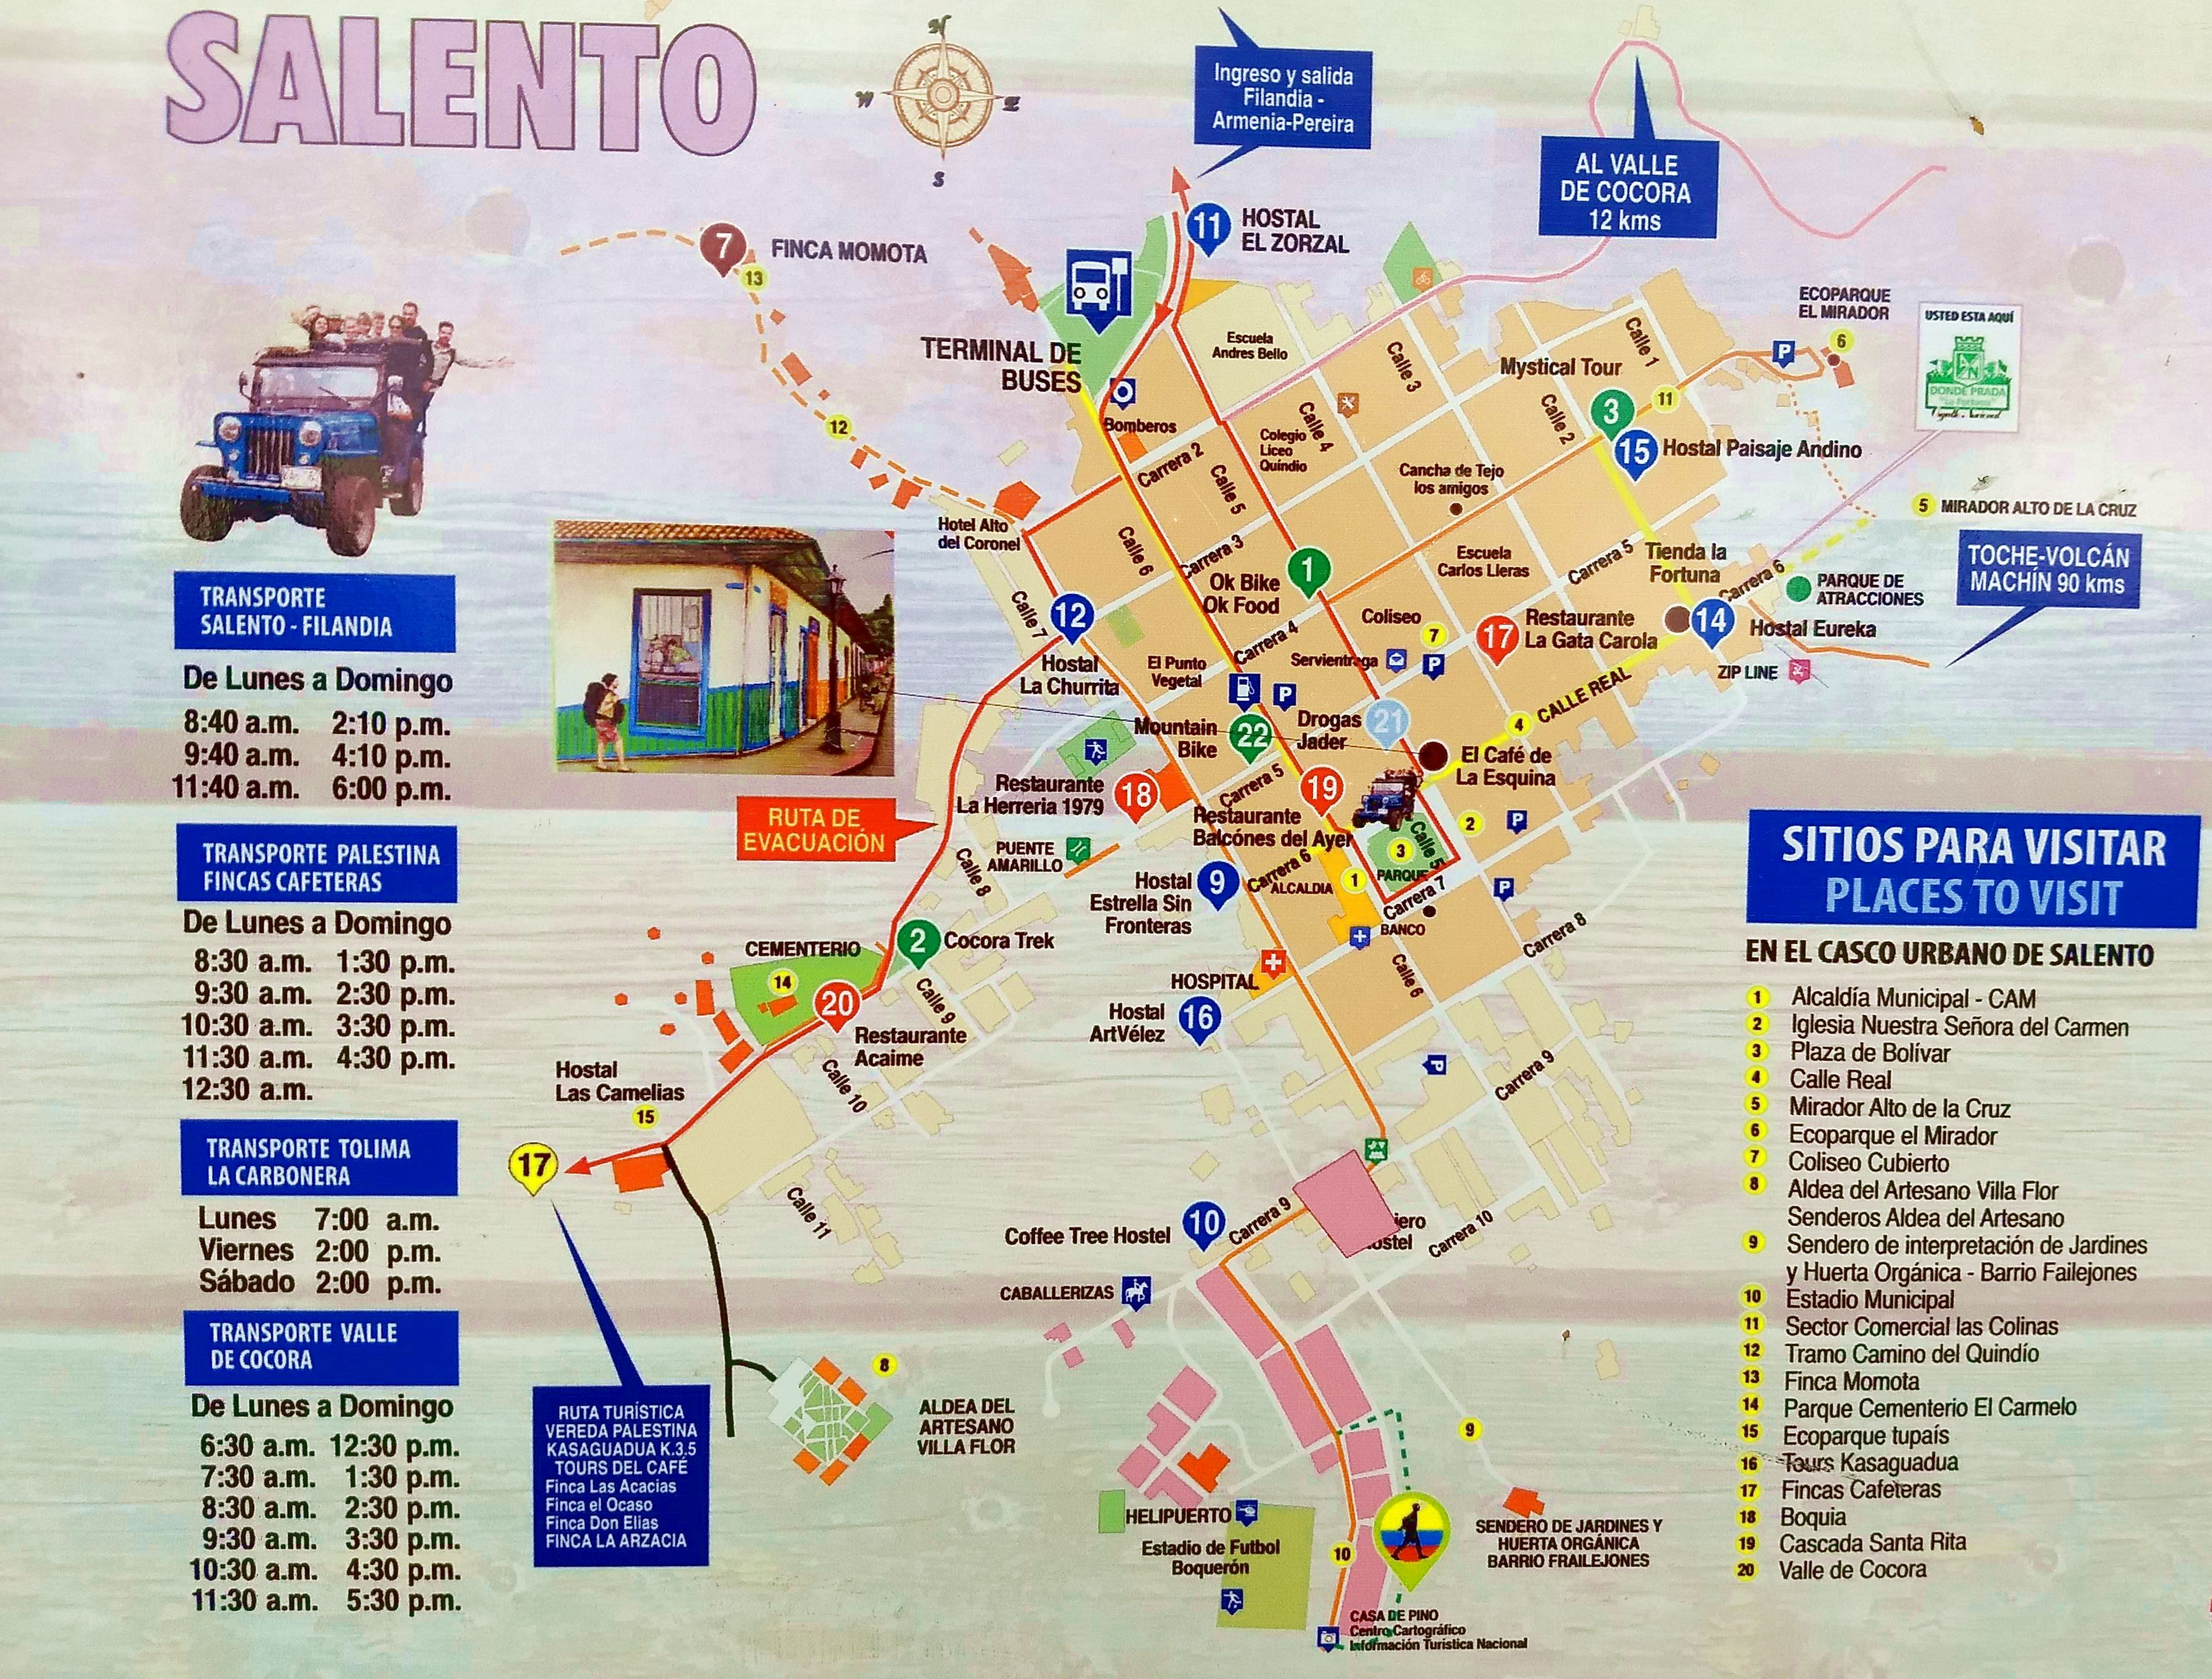 Salento, Colombia map